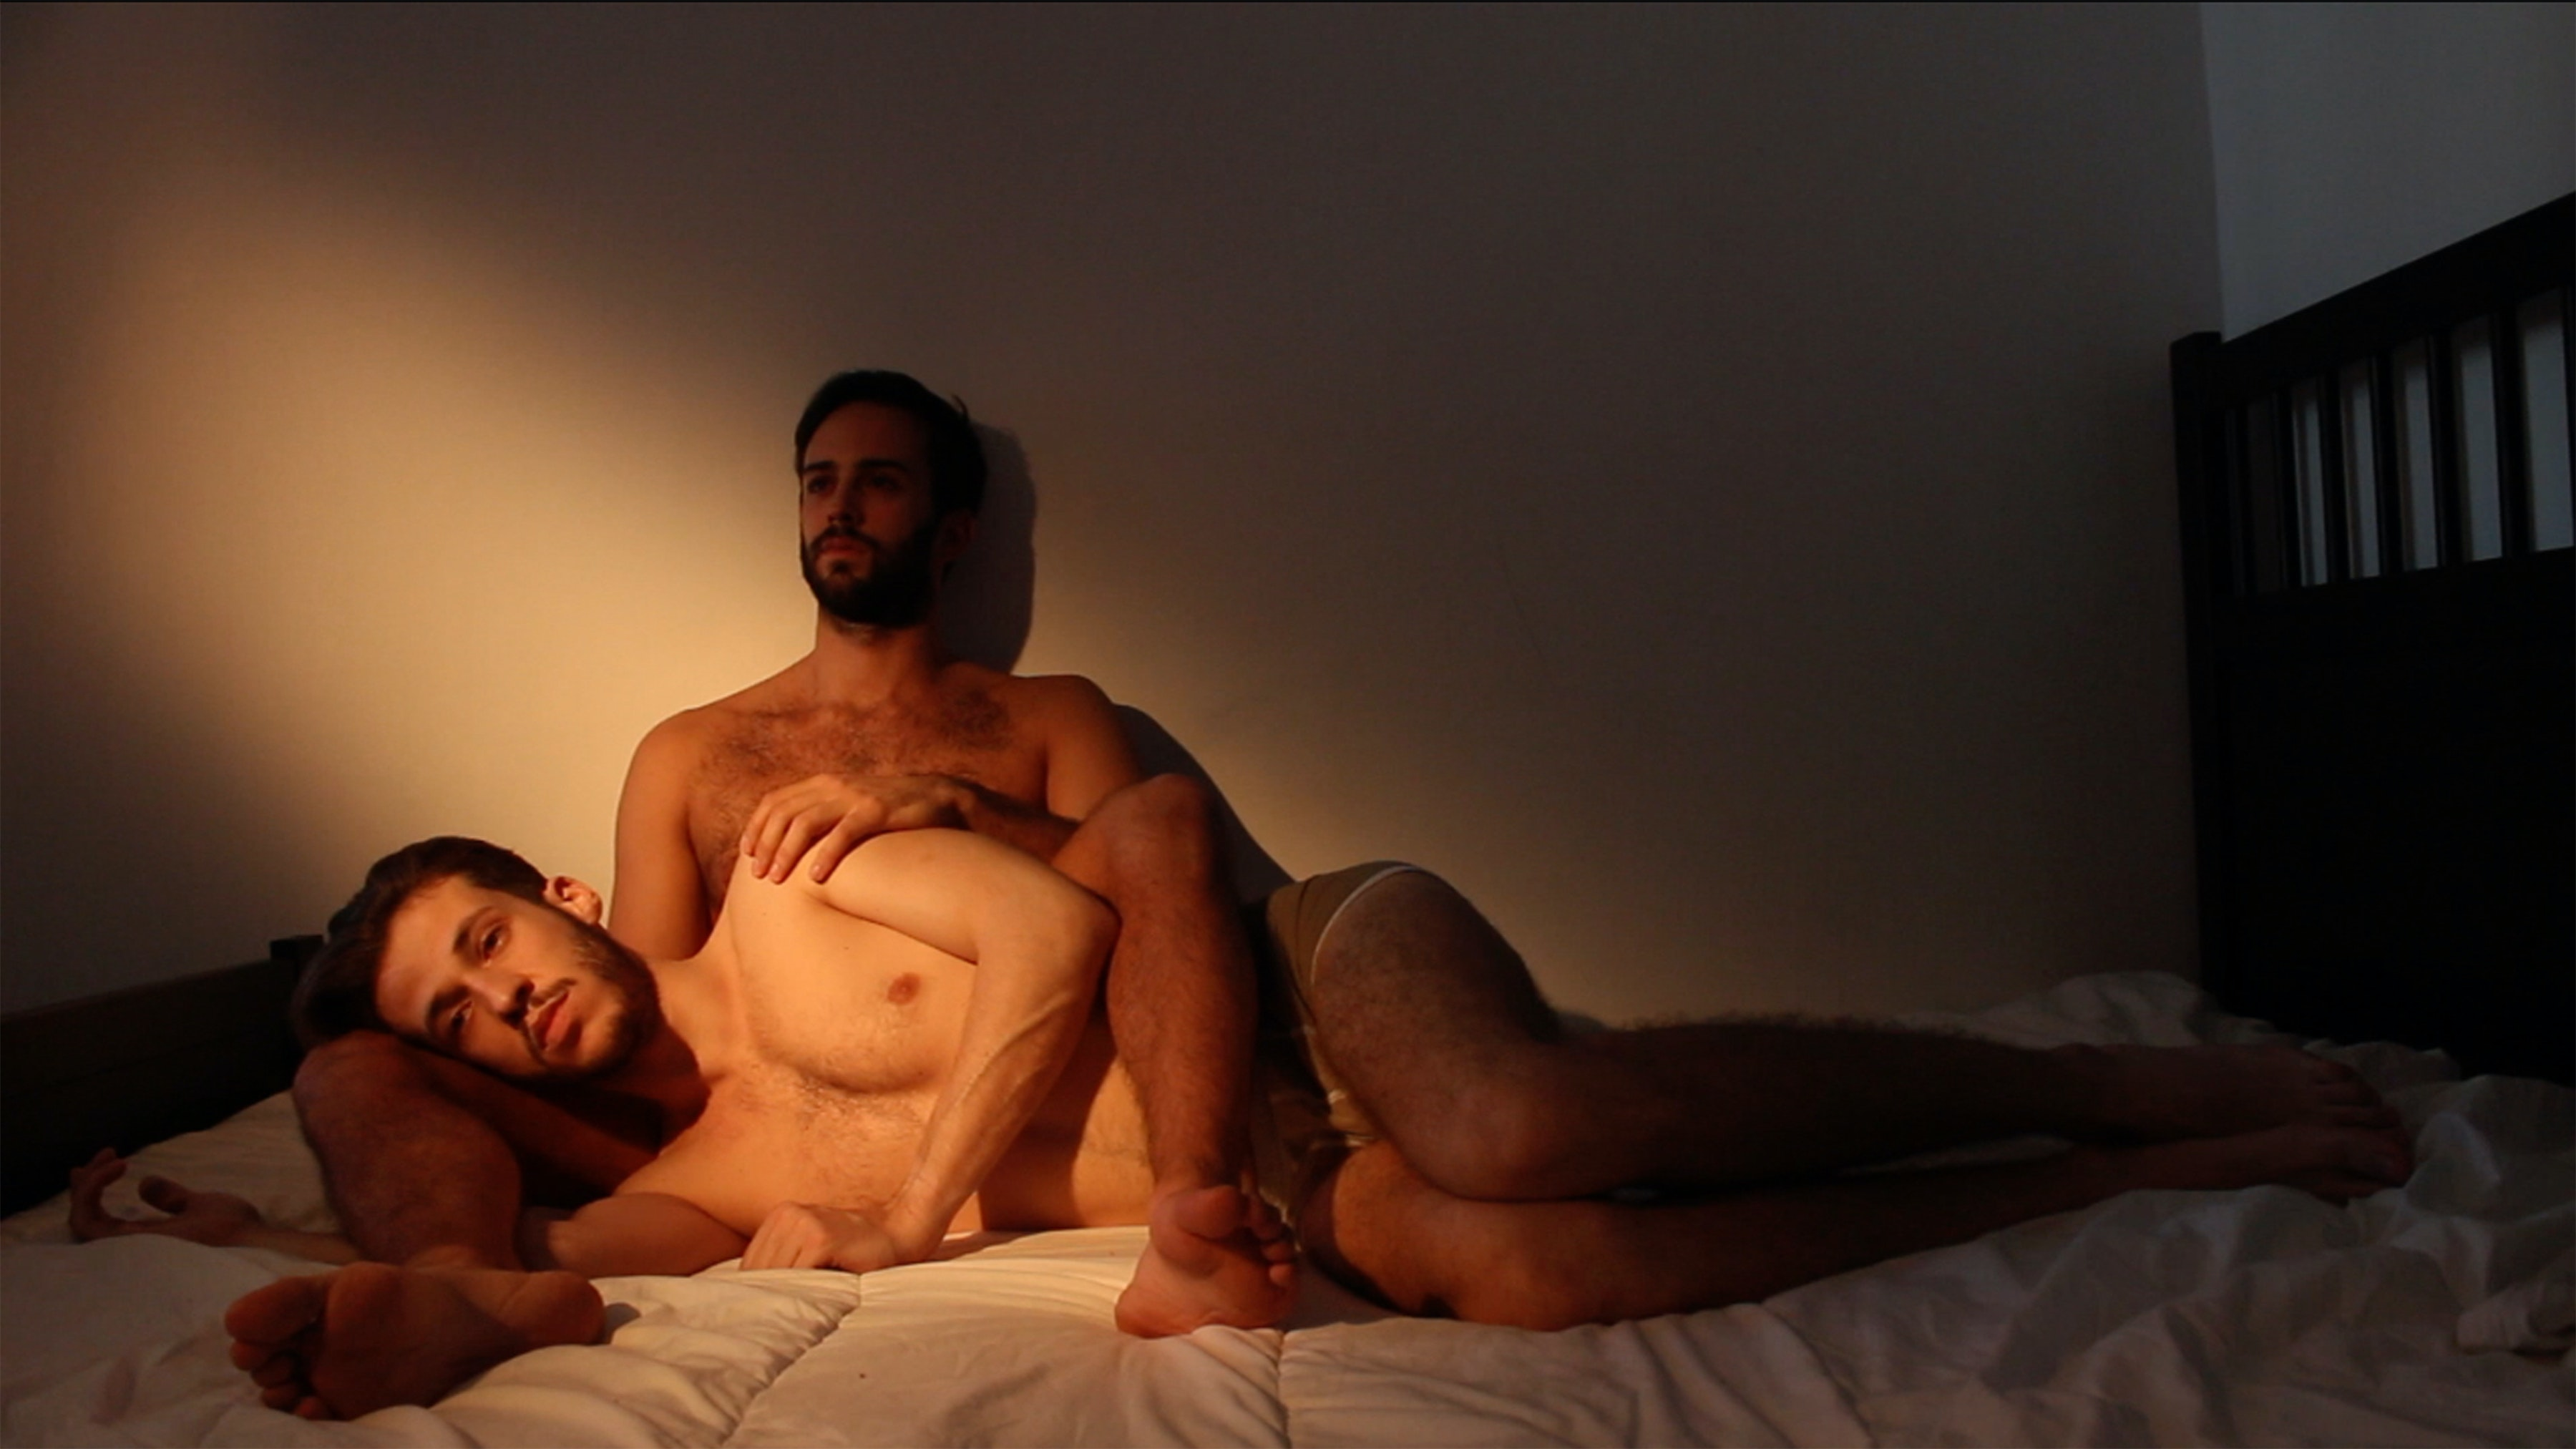 Straight sex gay perspective